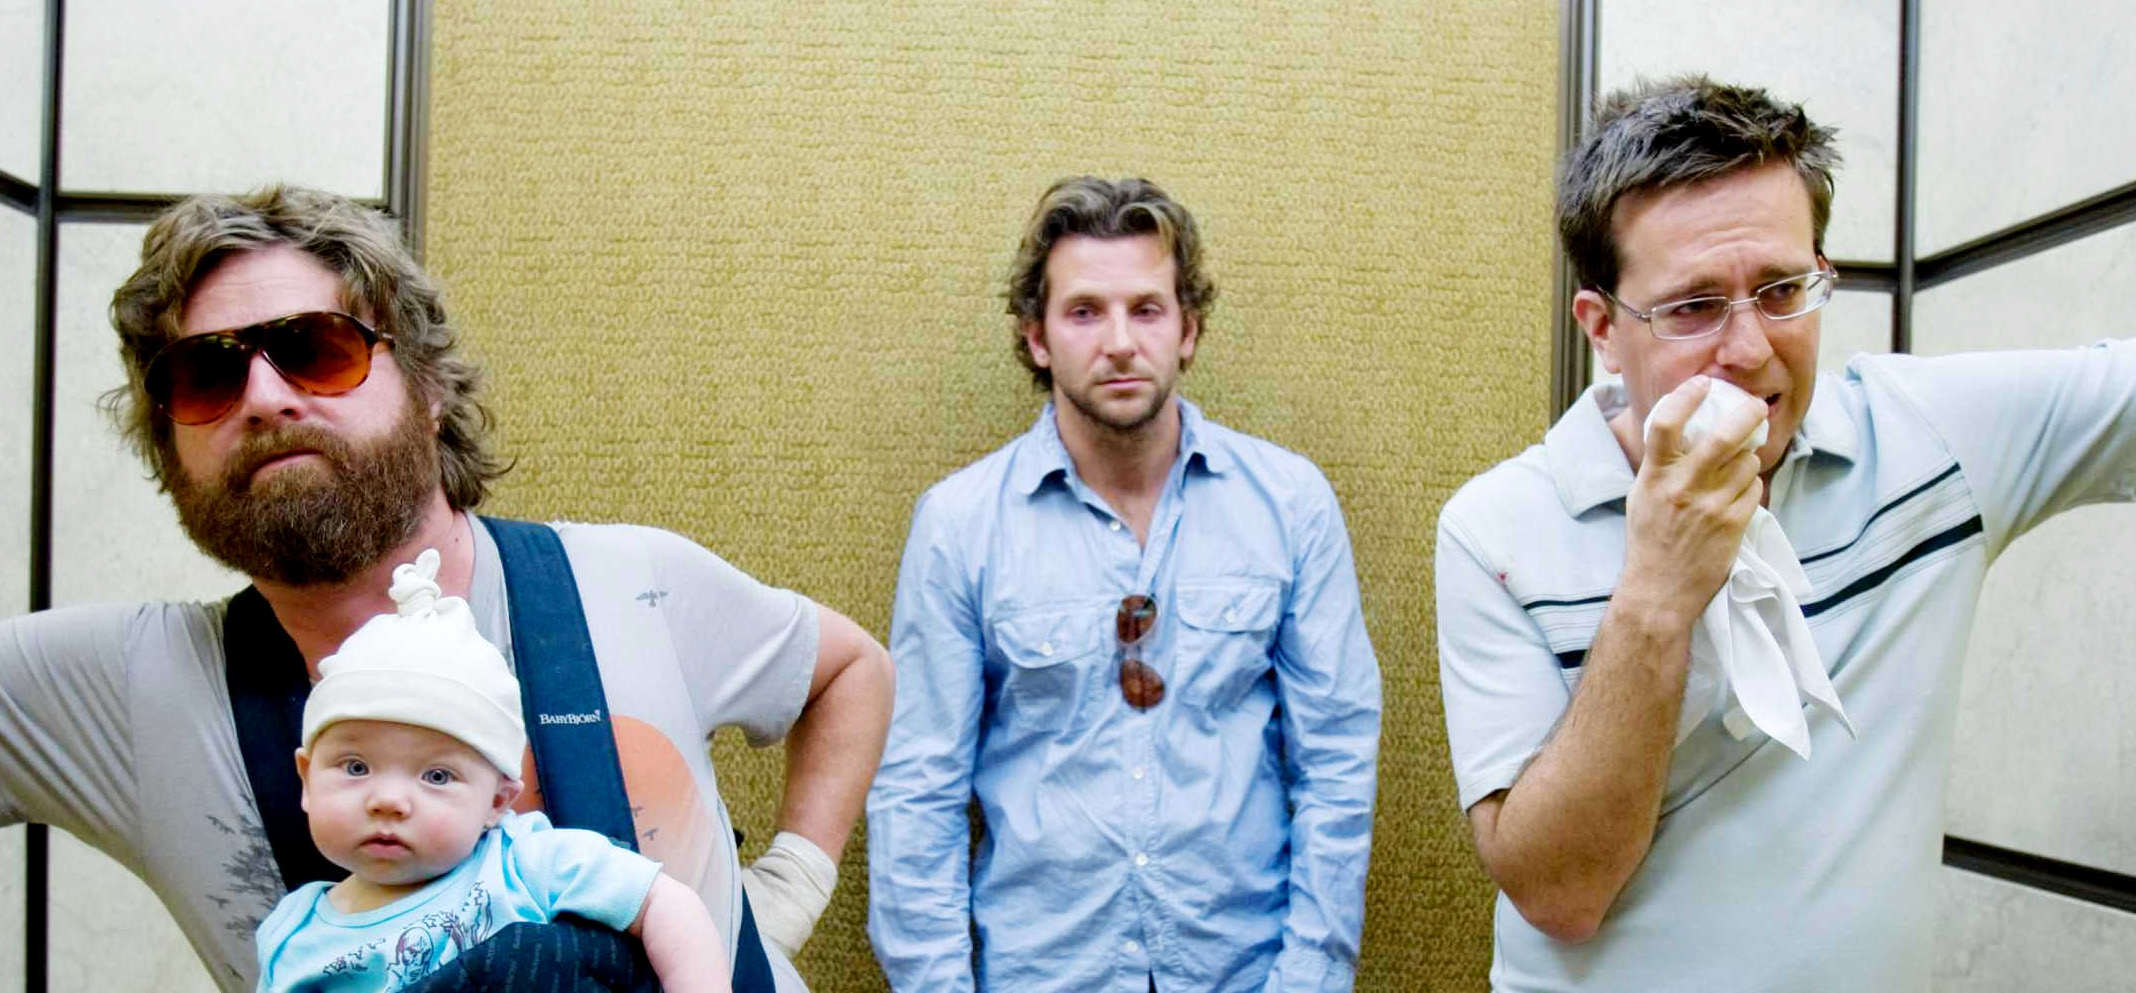 hangover A British Company Has Just Offered Up Possibly The Best Internship Ever